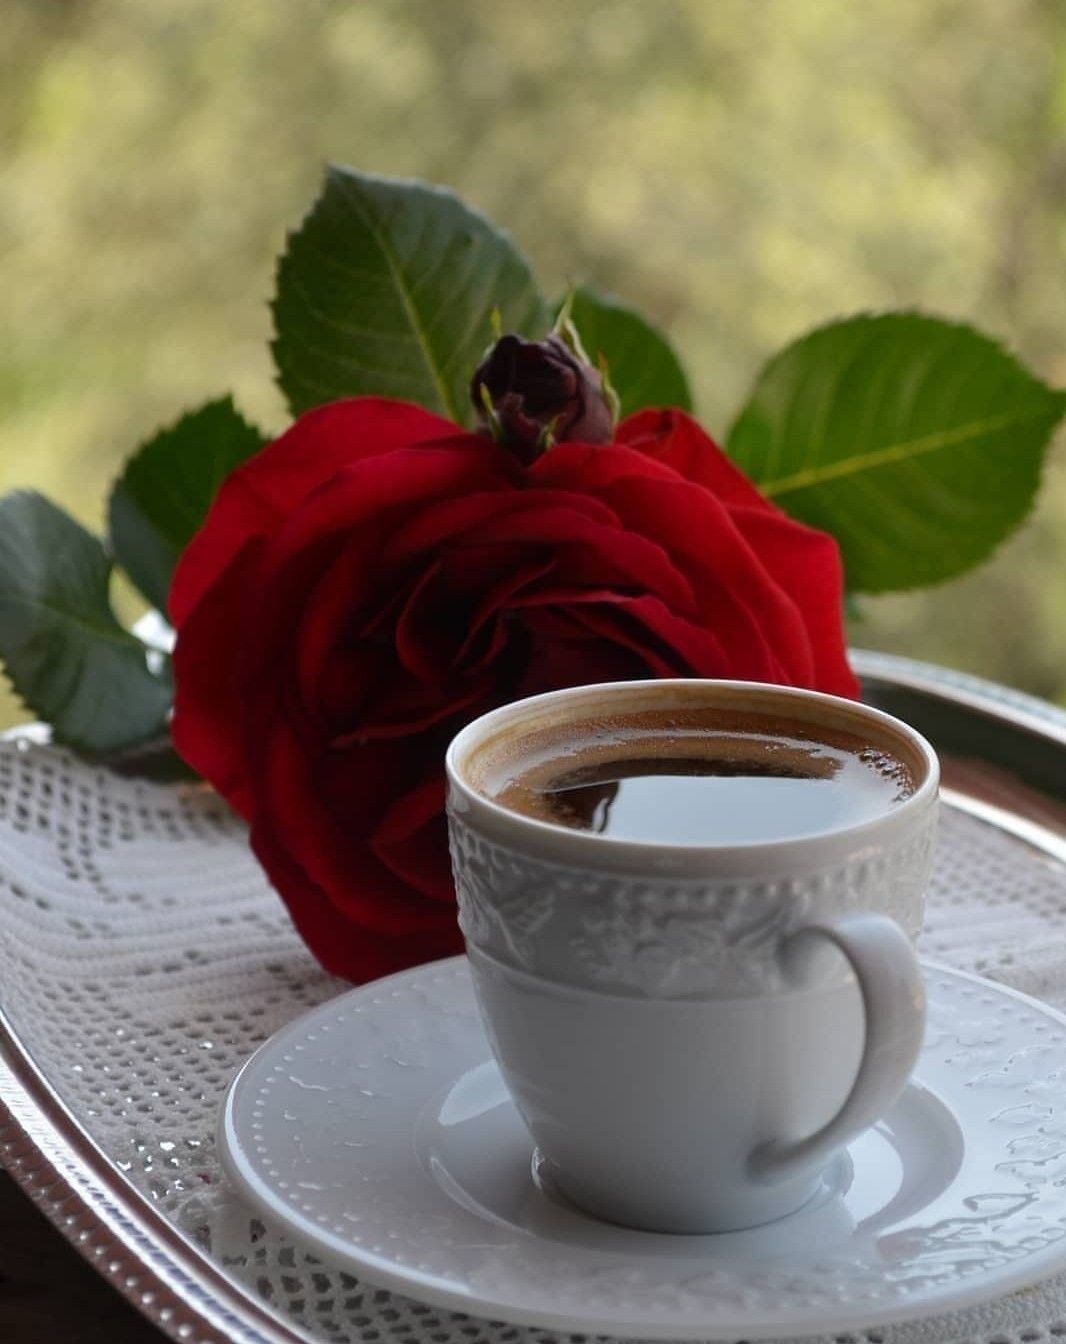 Coffee cafe image by Ruth on Drinks | Good morning coffee ...